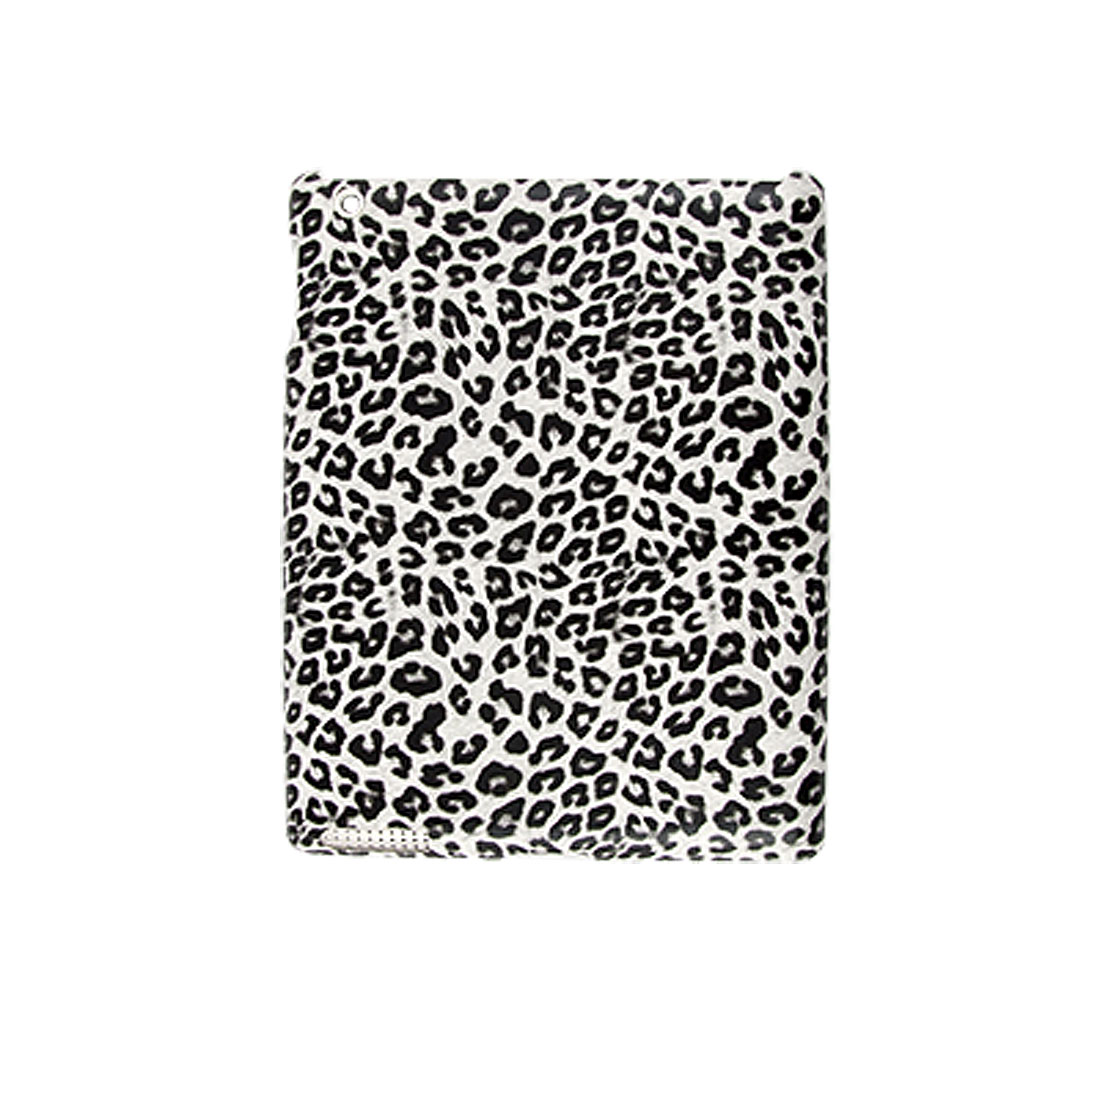 Black Leopard Print Hard Plastic Back Cover for iPad 2G